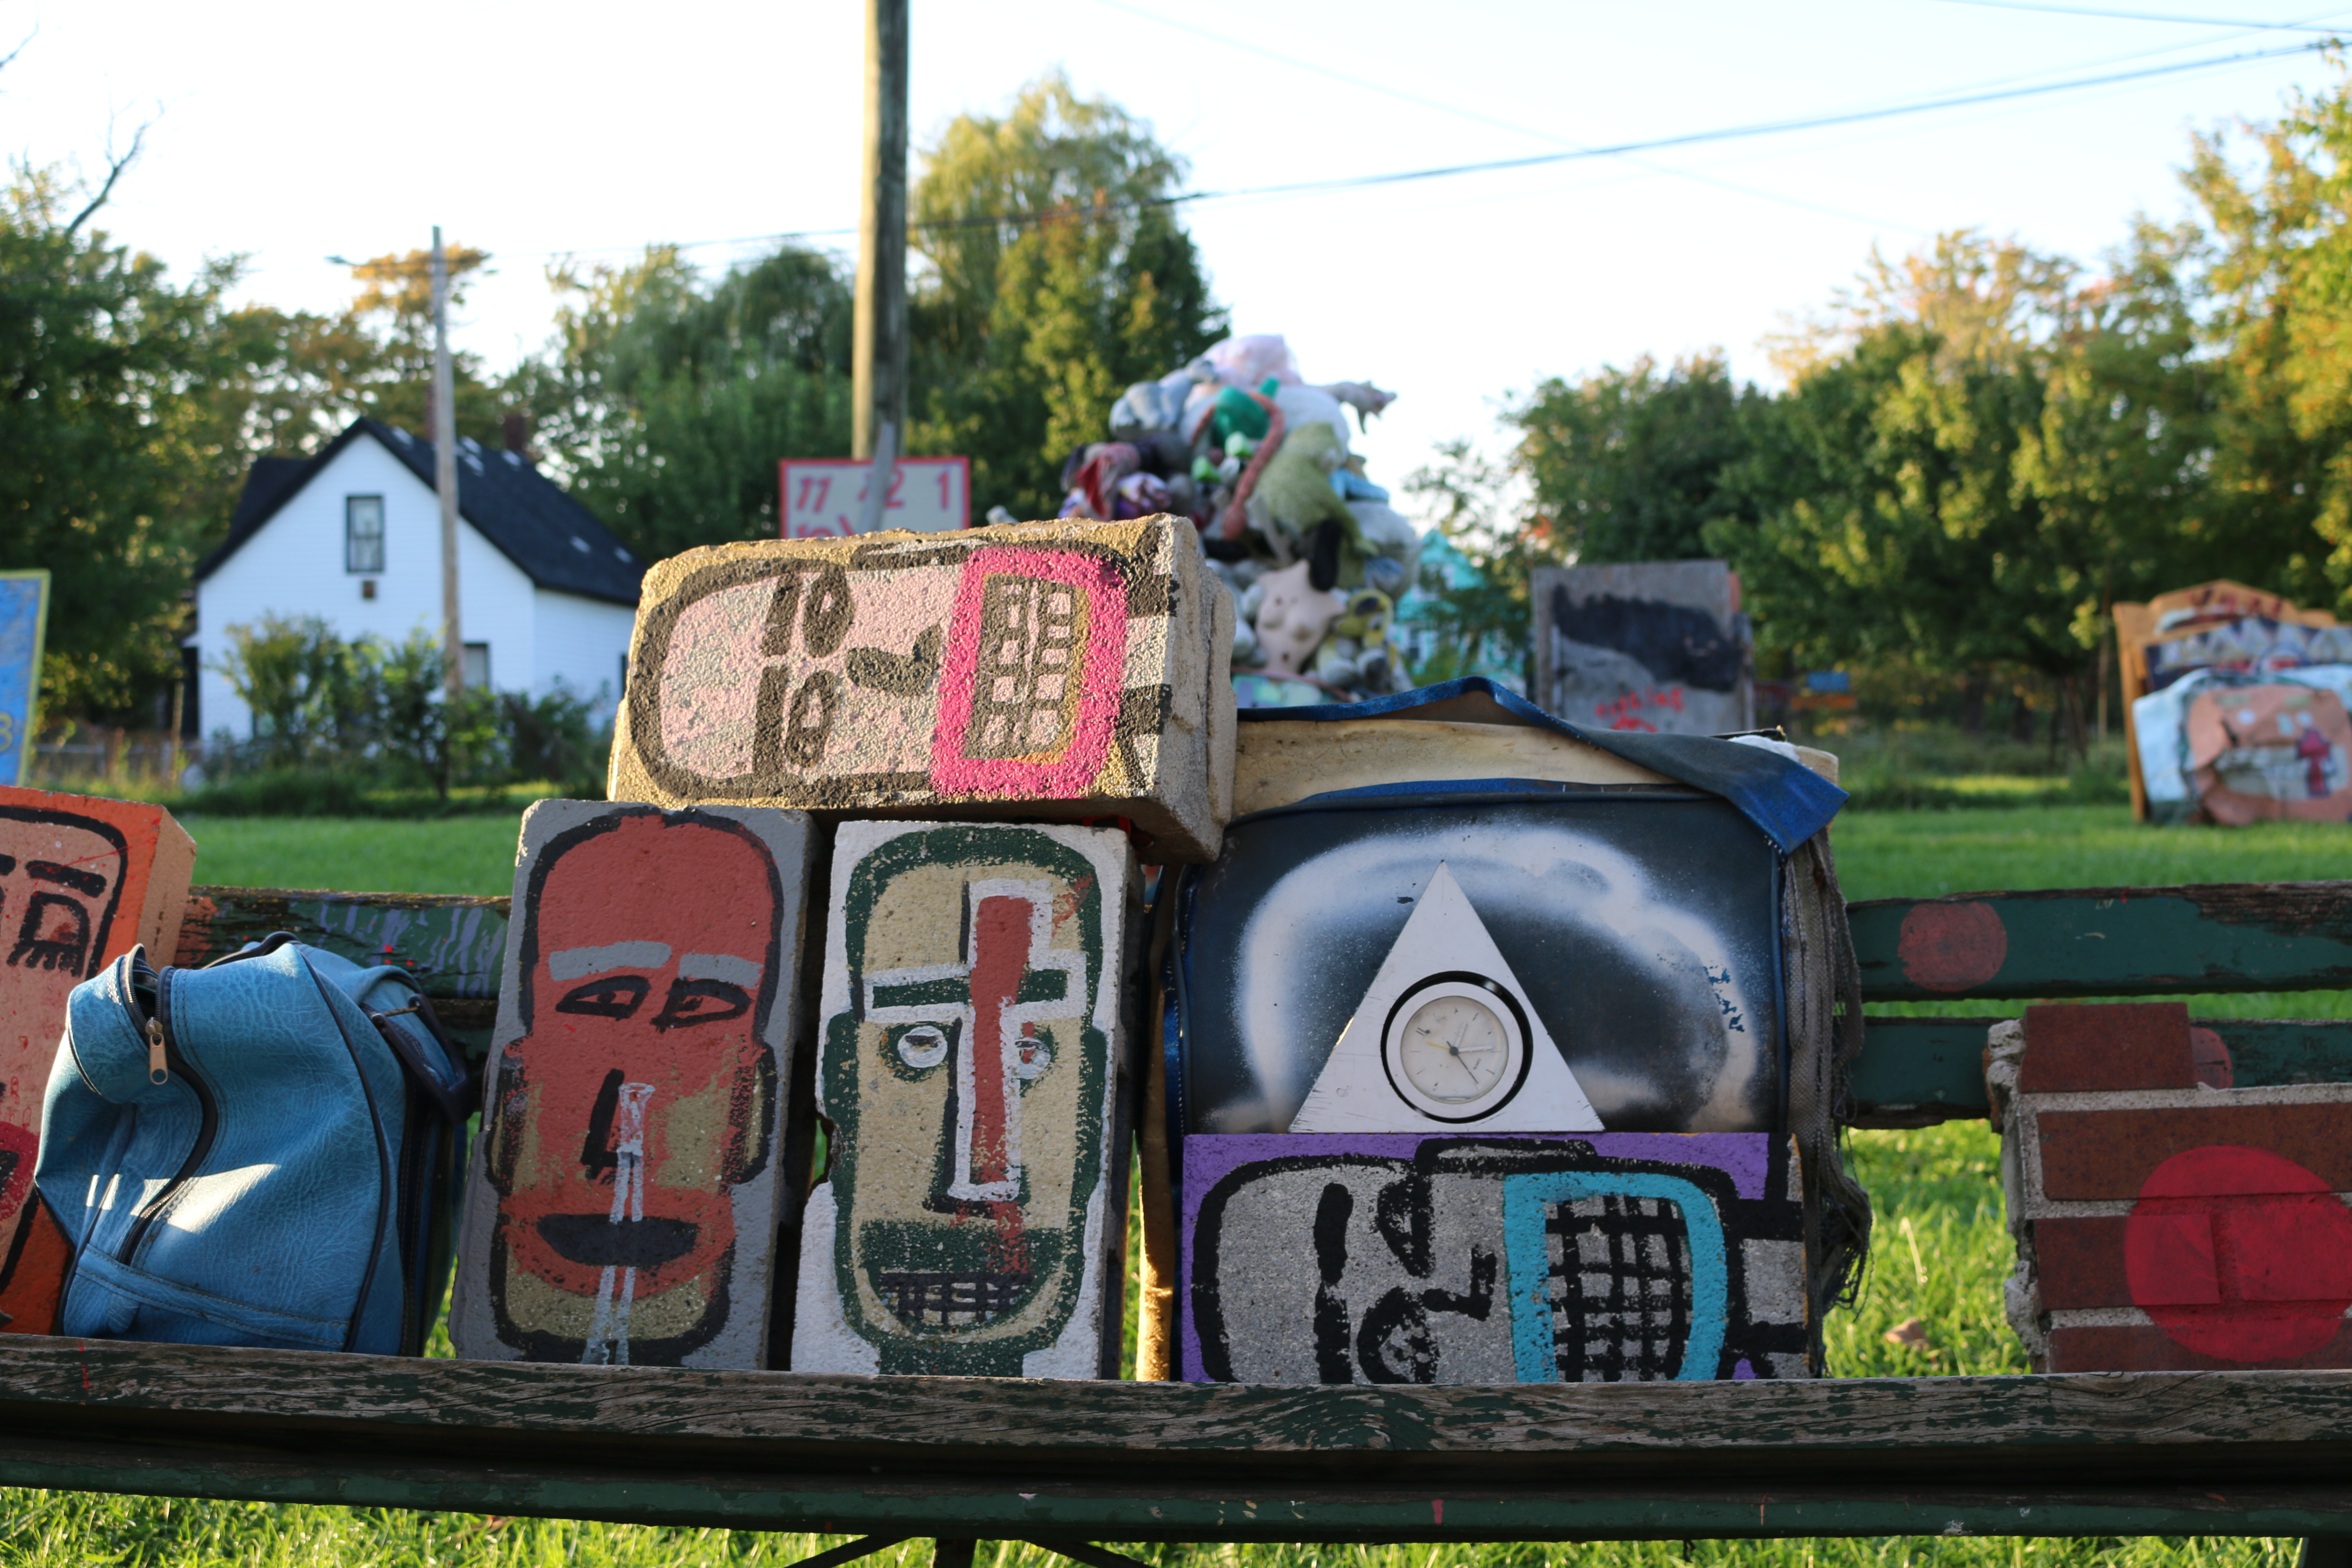 Large faces painted on blocks and car hood.